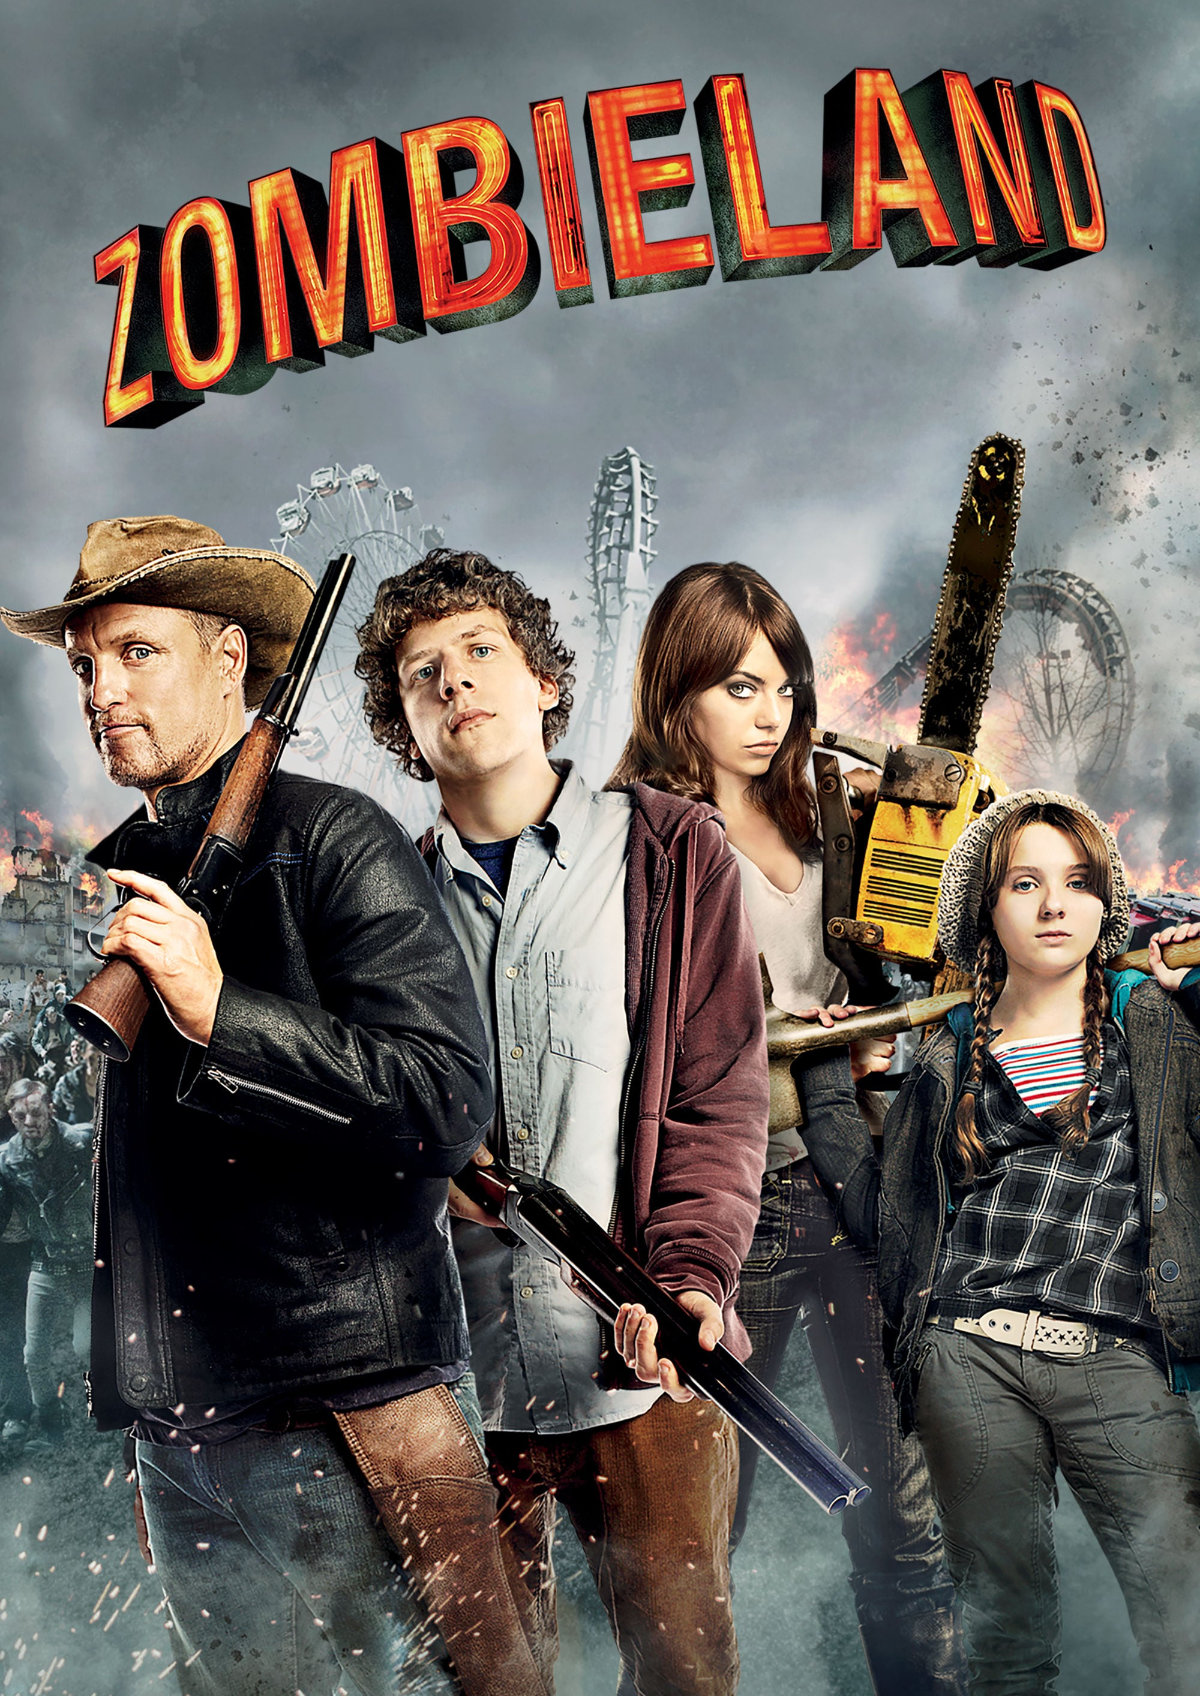 'Zombieland' movie poster